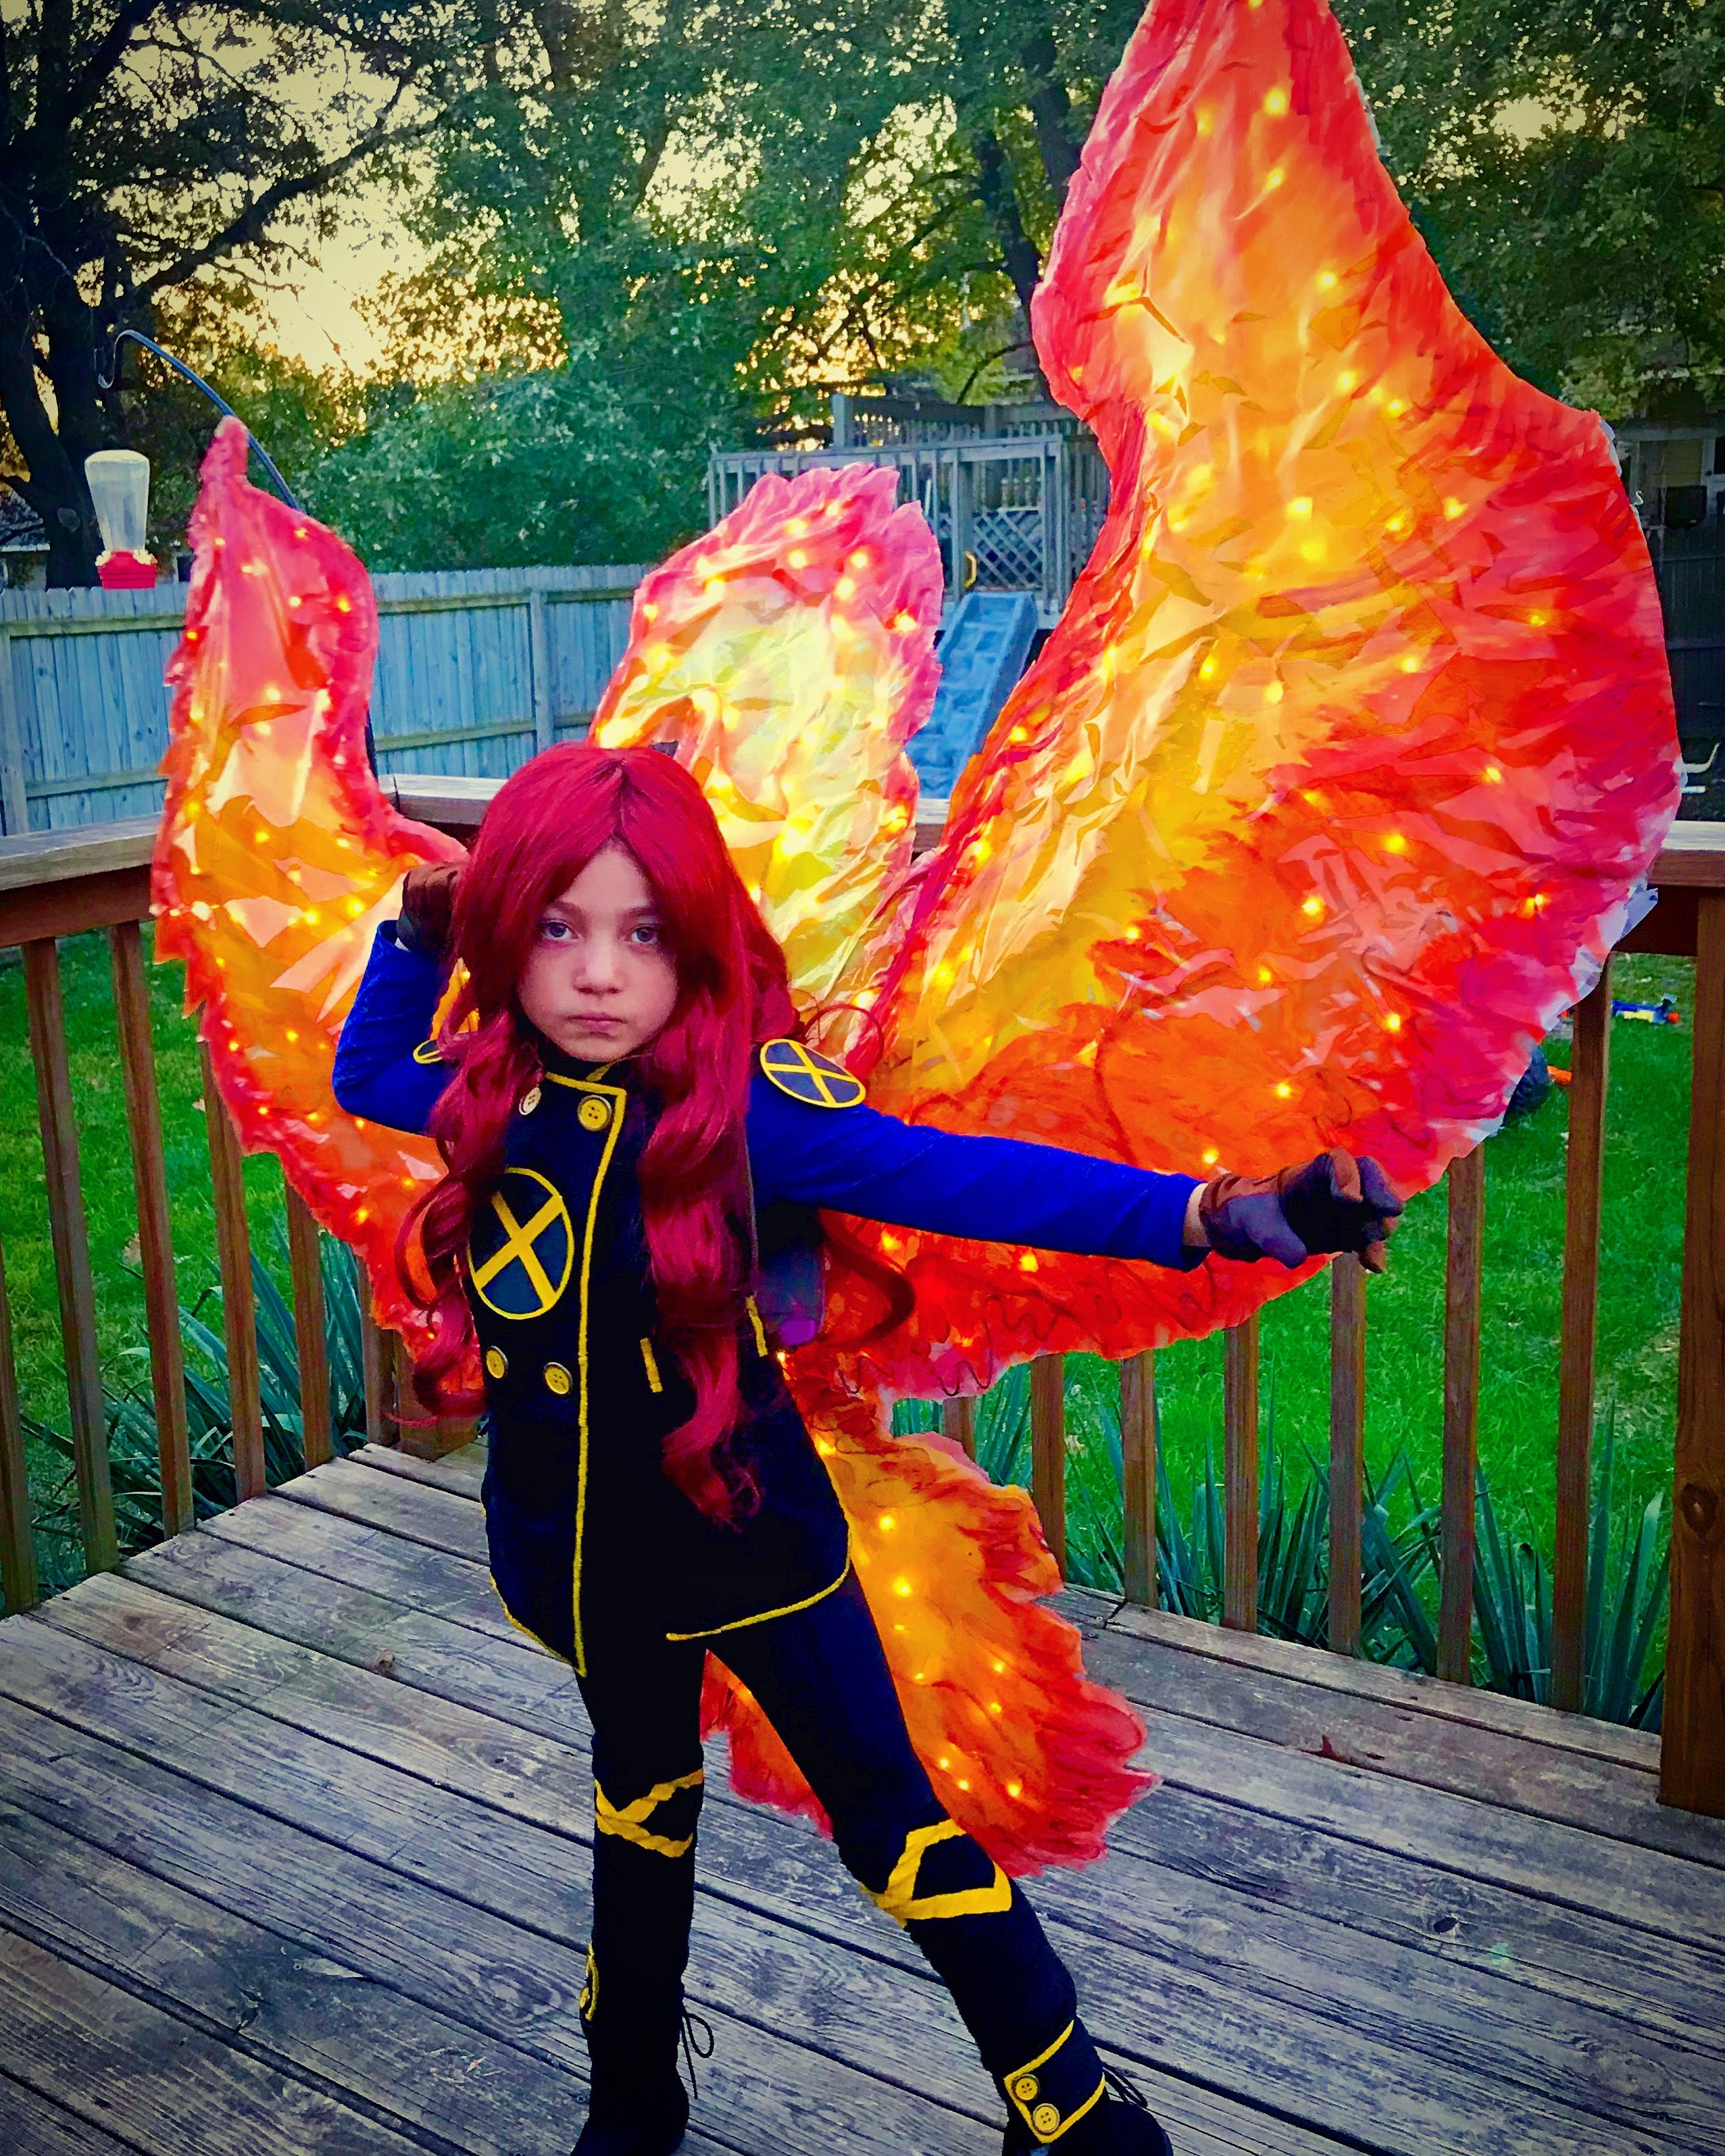 Jean Grey, Phoenix, Fire Wings, Phoenix Wings, Cosplay, x